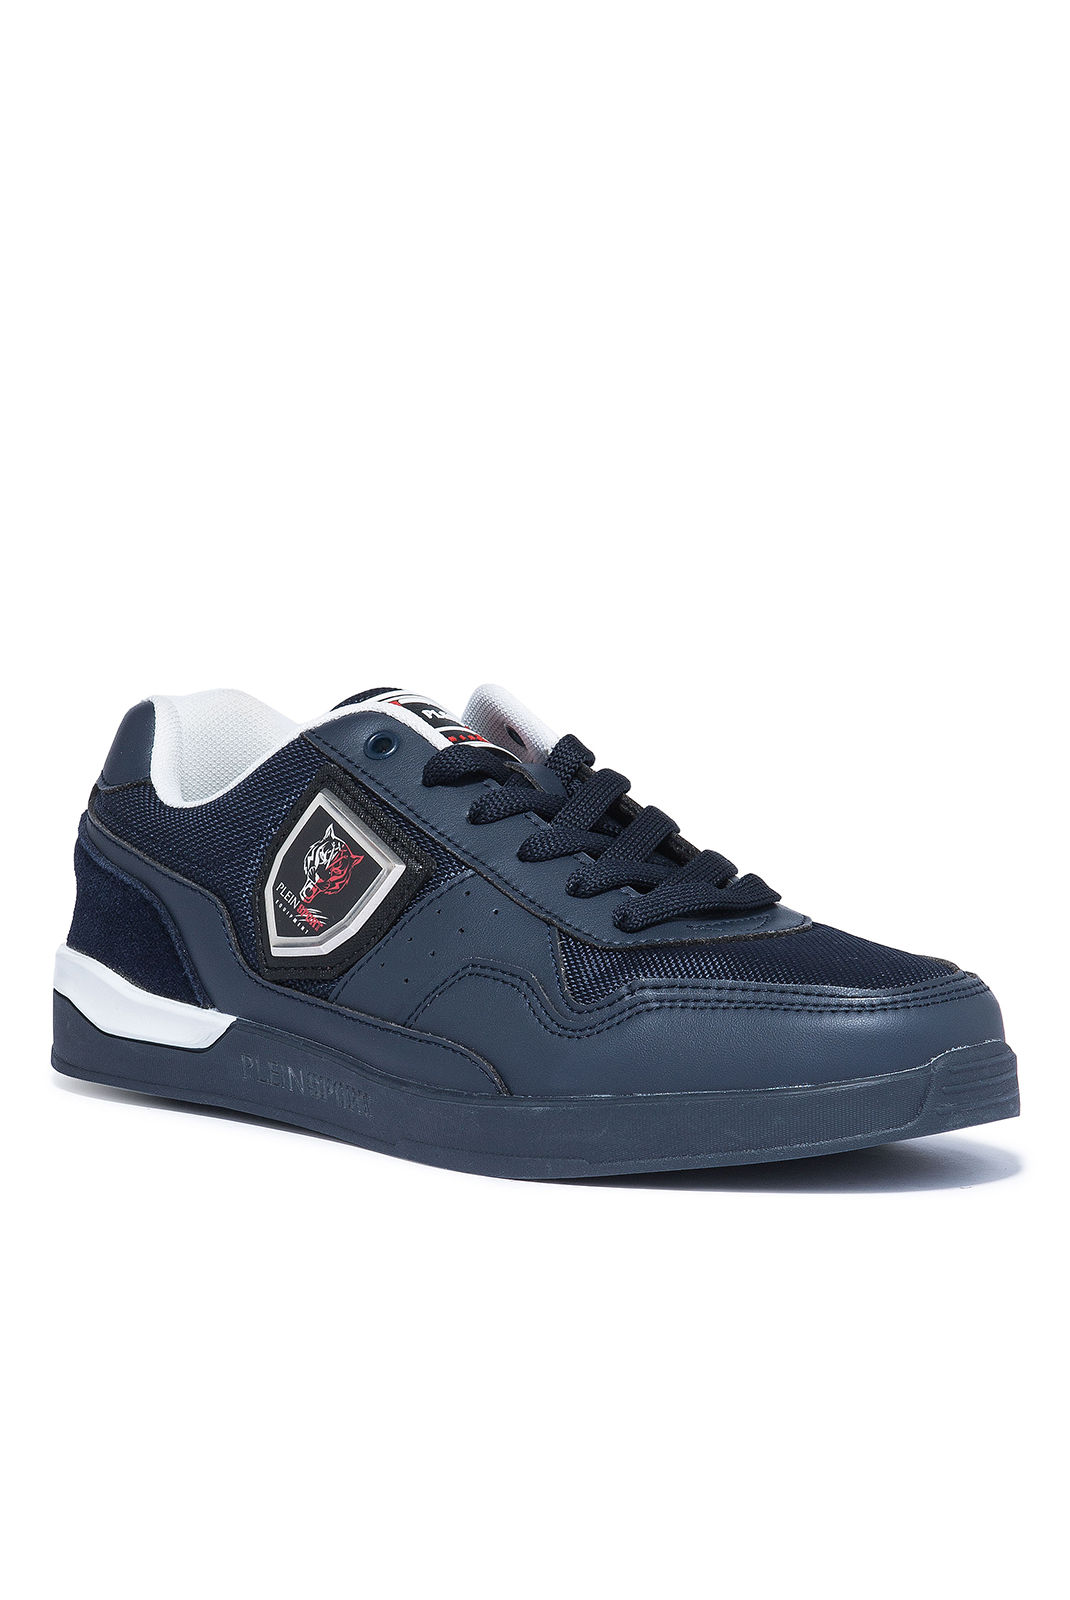 Baskets / Sport  Plein Sport P17S MSC0314 COBALT NICKEL